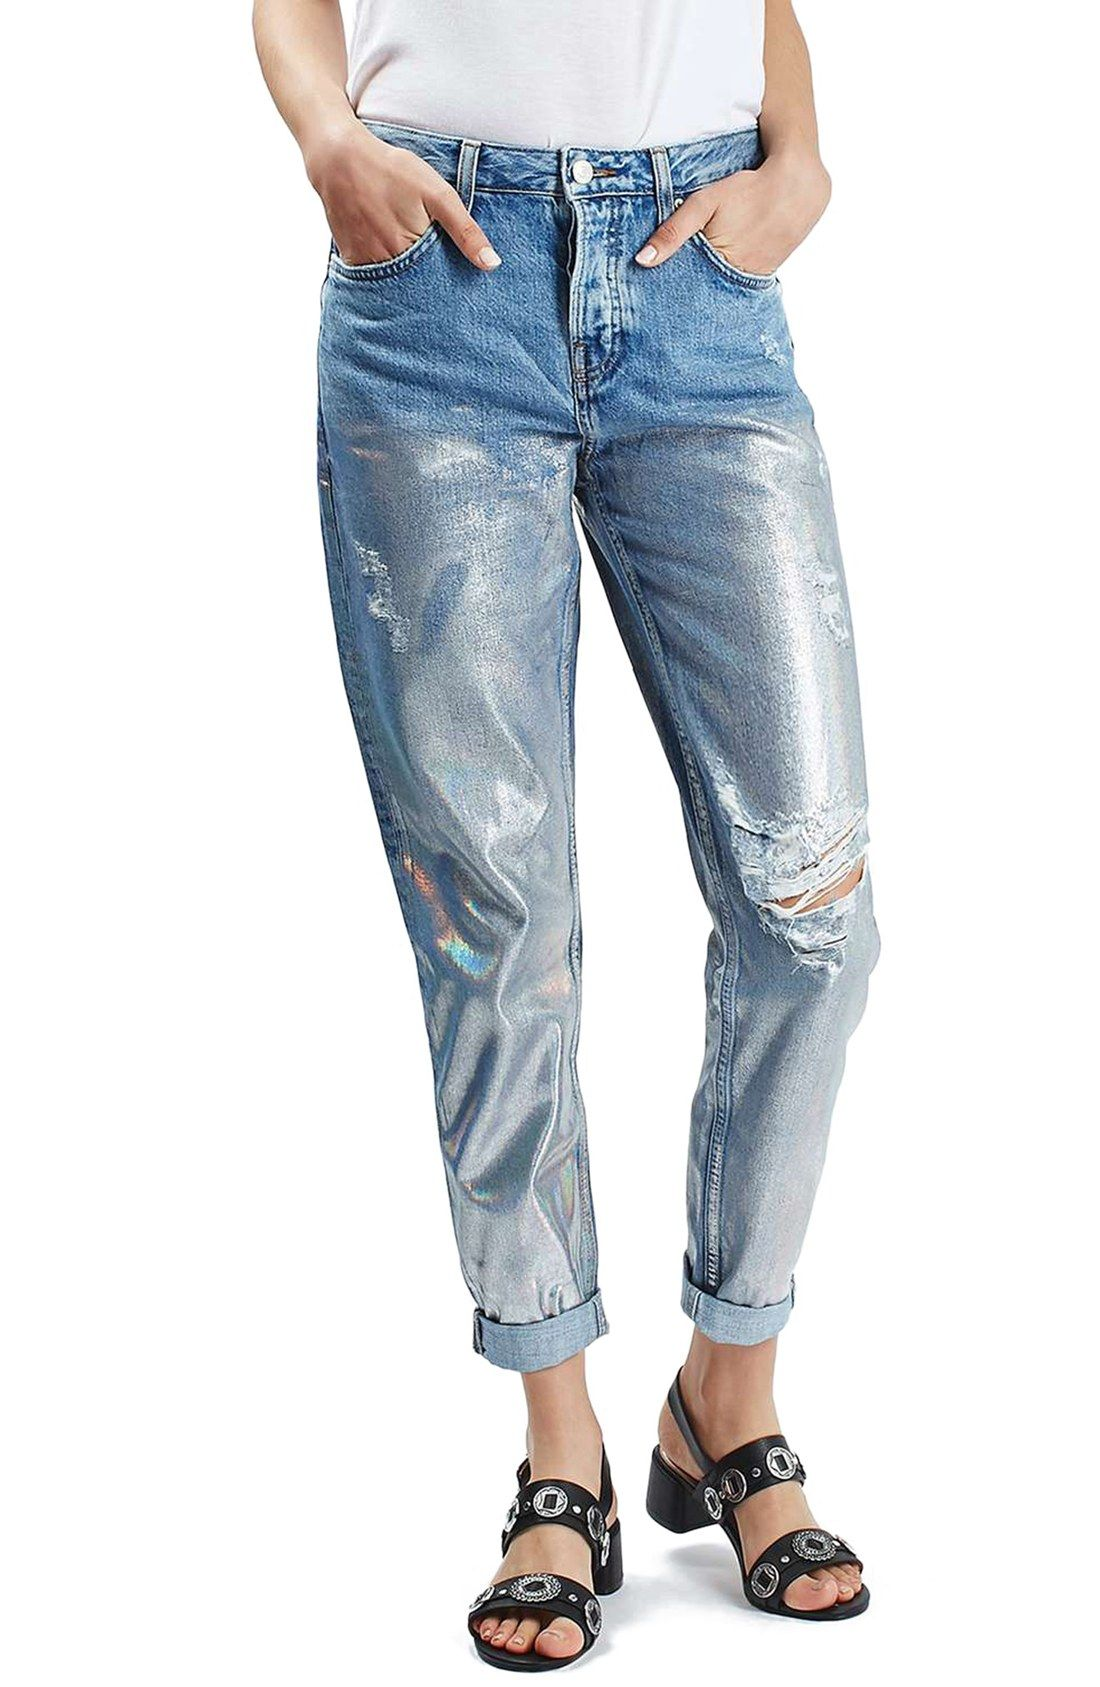 Free shipping and returns on Topshop 'Hayden' Metallic Distressed Boyfriend Jeans at Nordstrom.com. Boyfriend jeans with a relaxed fit and distressing get a weekend-savvy update with hastily brushed silver foil for a glam effect.